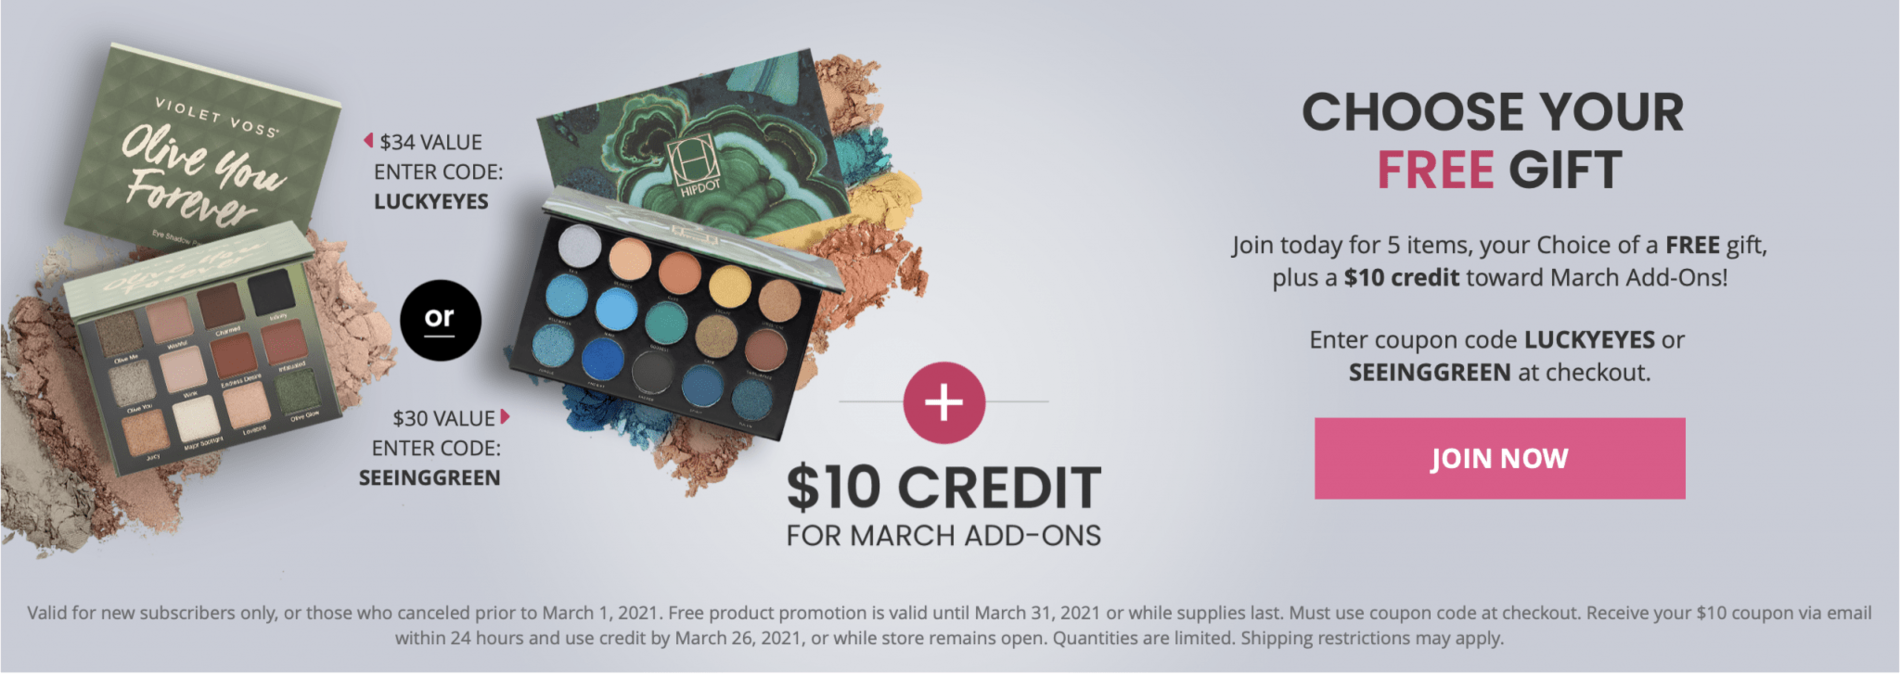 BOXYCHARM March 2021 Coupon Code – Free Gift with Purchase + $10 Pop-Up Credit!